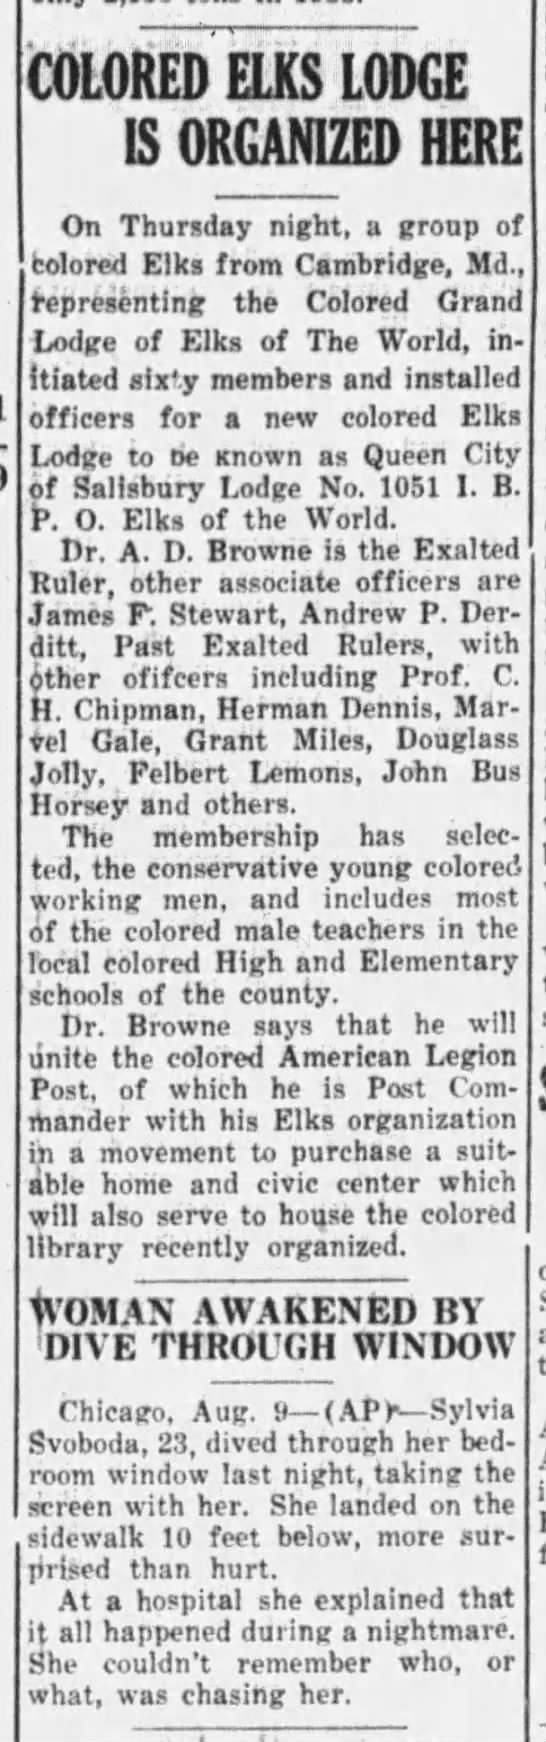 The Daily Times (Salisbury, Maryland) 09 Aug 1940, Fri Page 2 - COLORED ELKS LODGE IS ORGANIZED HERE On...